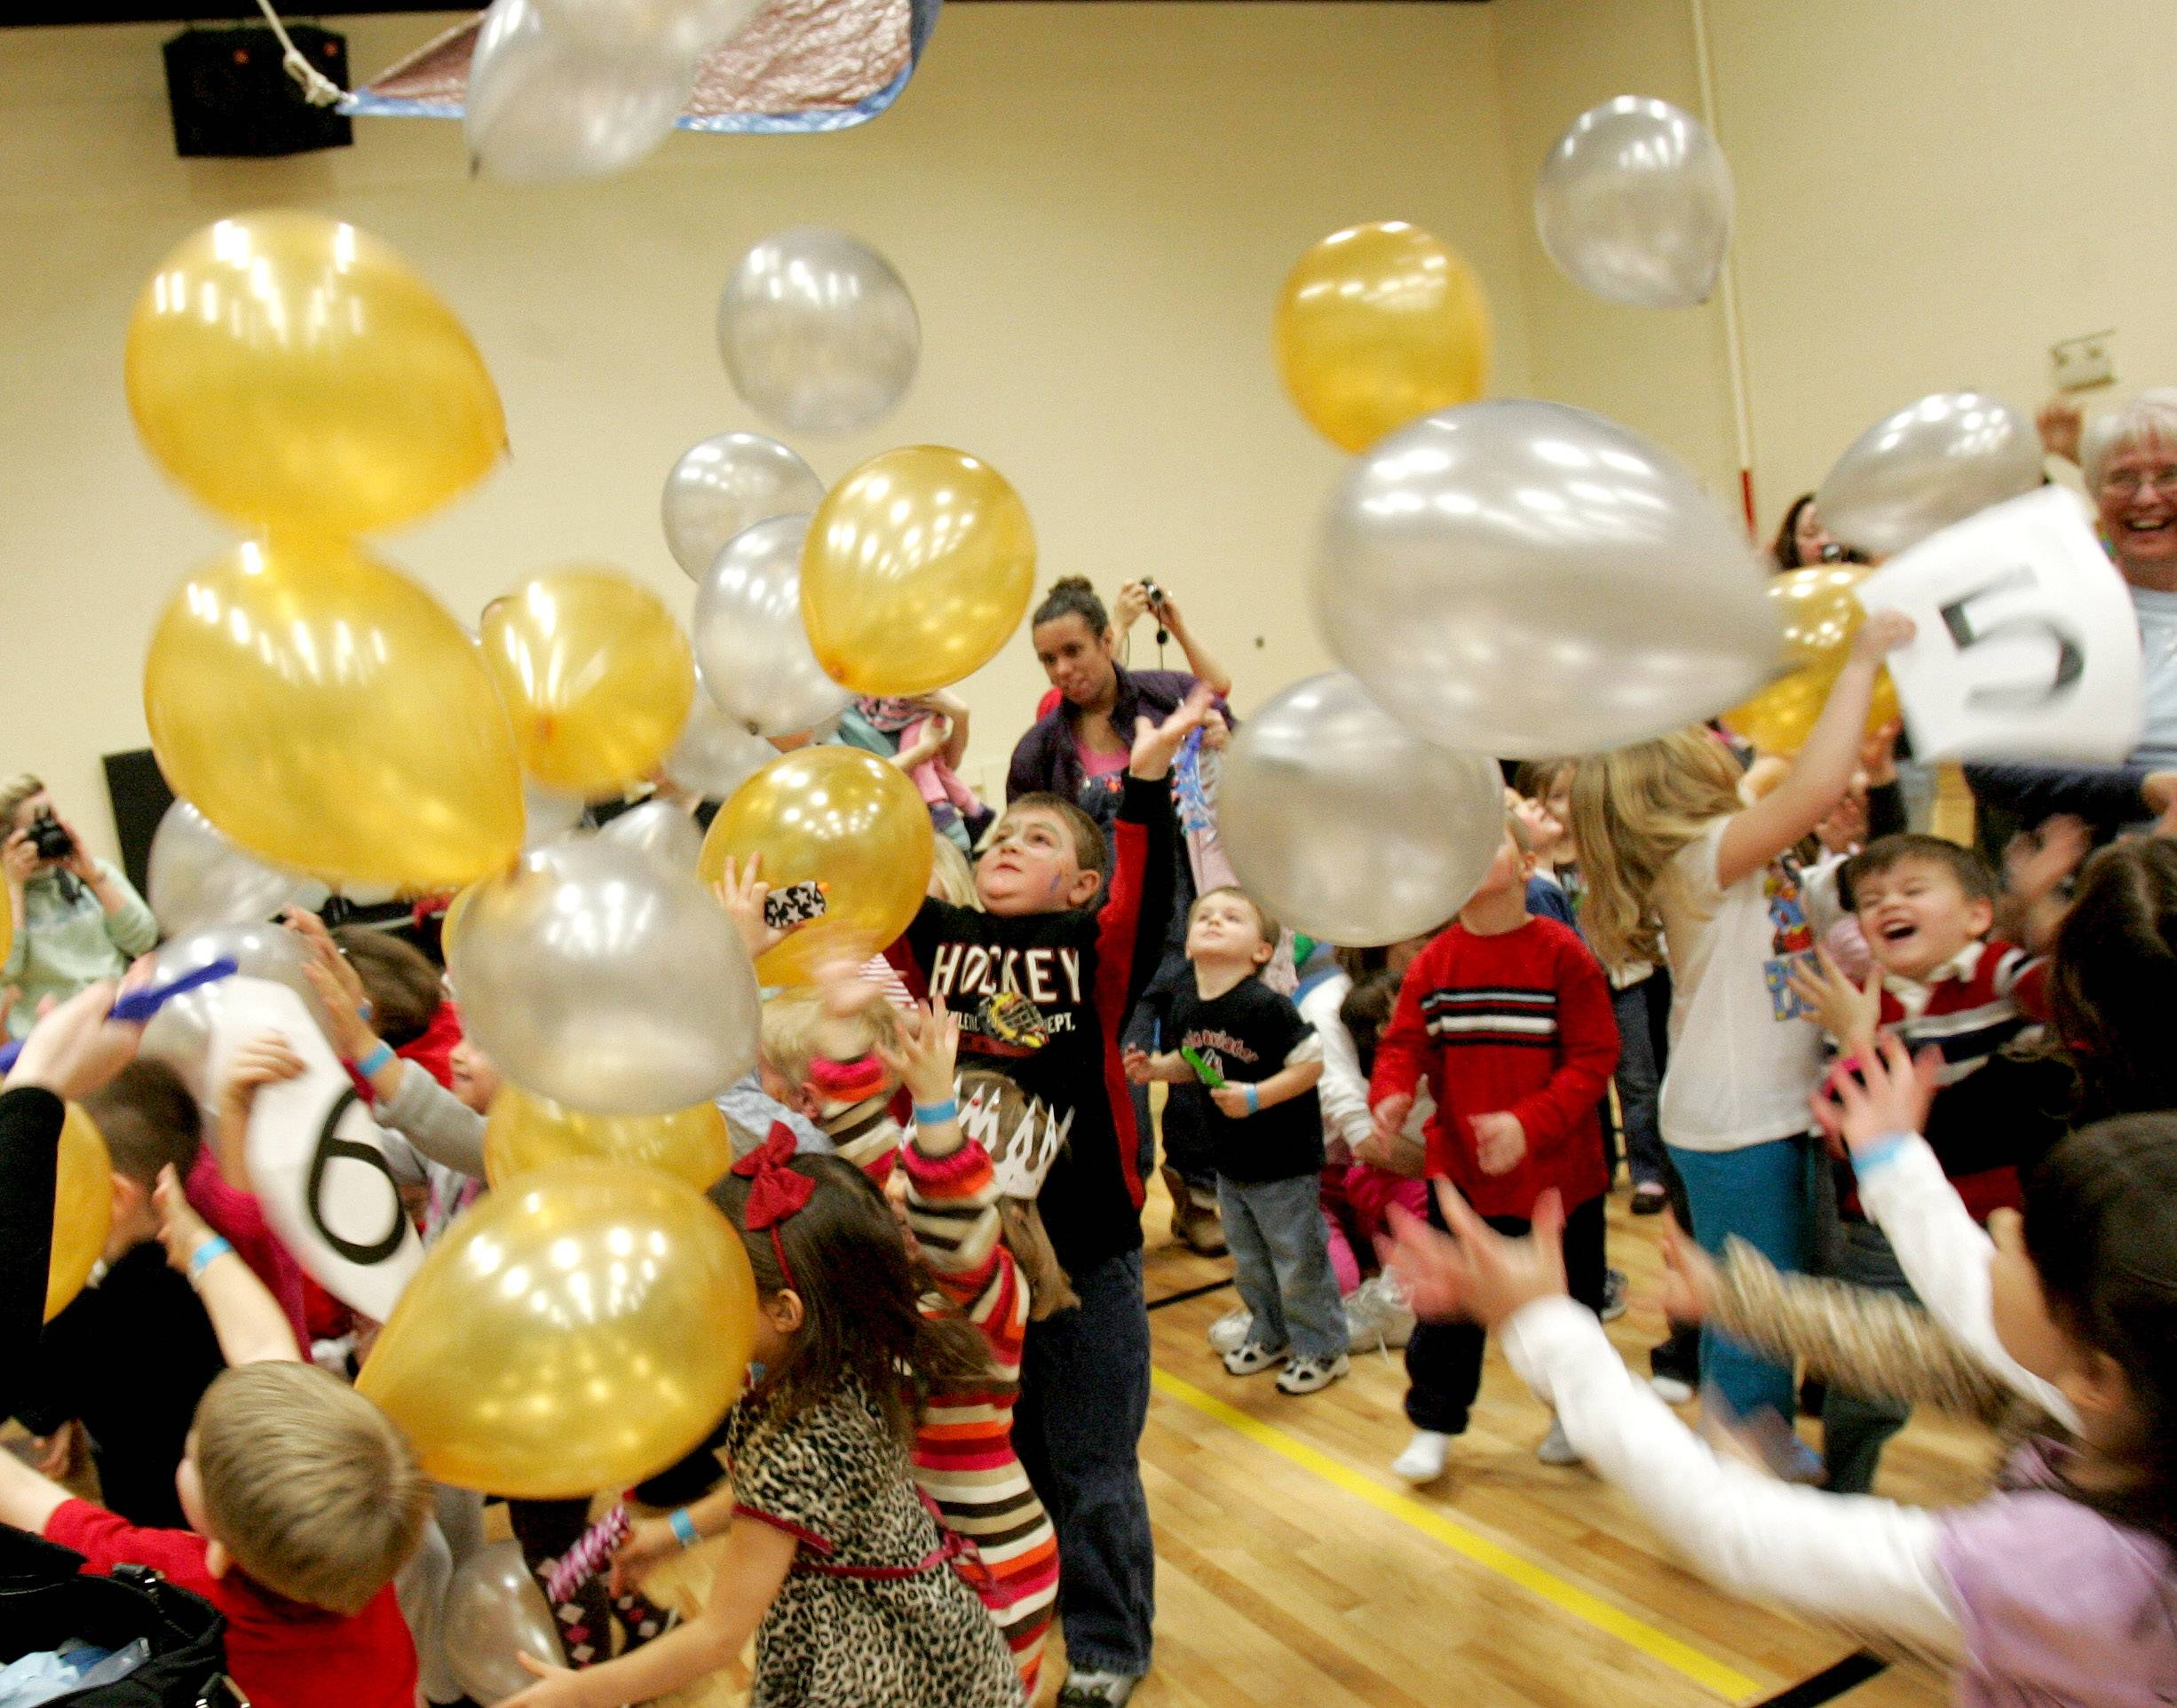 Young kids and their parents celebrate the New Year early at a previous Teenie Weenie New Year's Eve Ball at the Carol Stream Park District's Simkus Recreation Center.